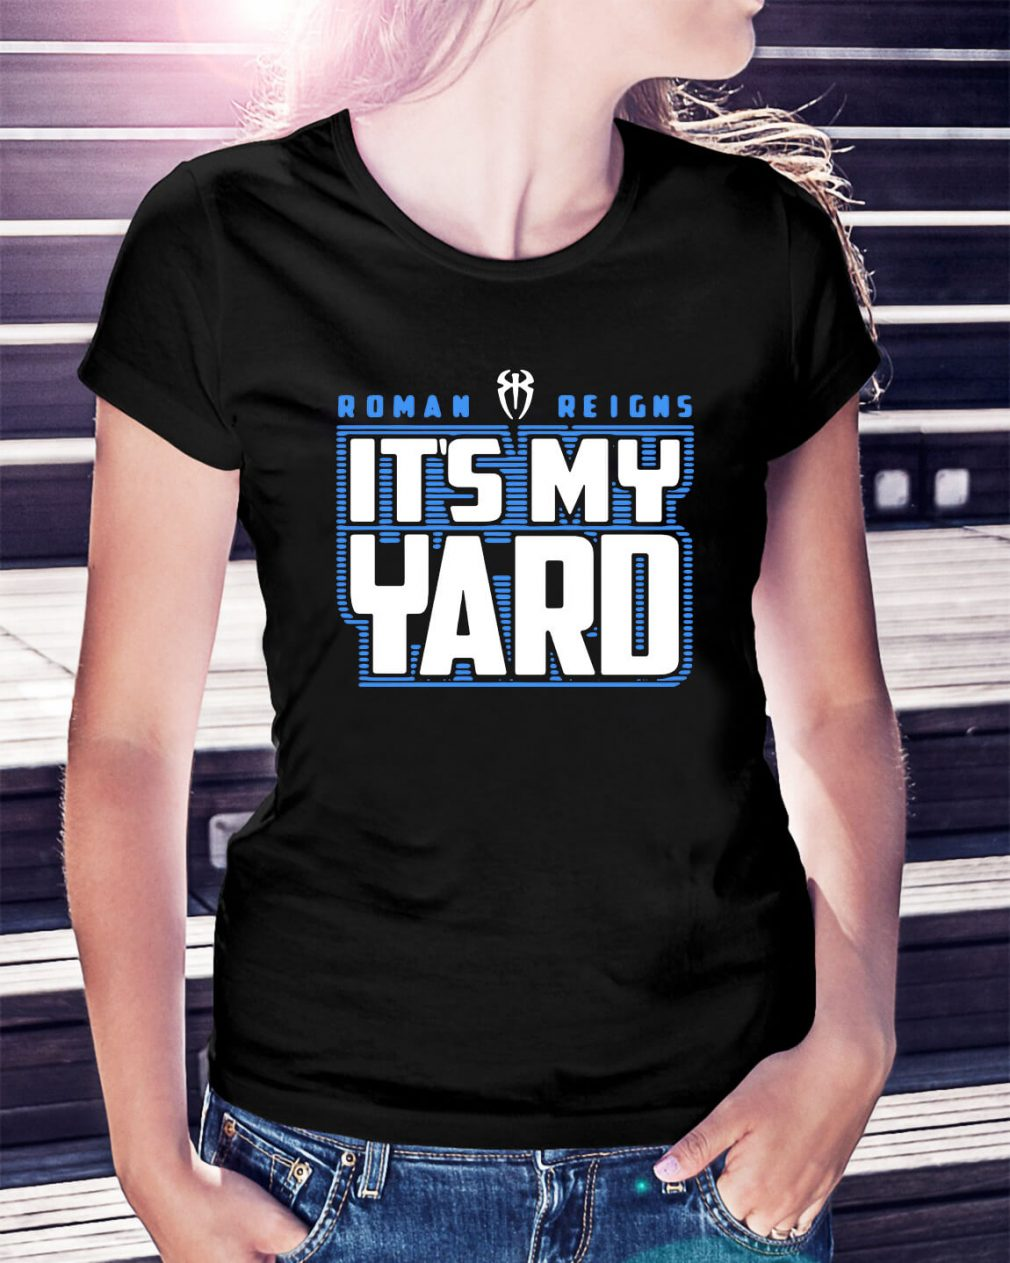 WWE Roman Reigns it's my yard Ladies Tee